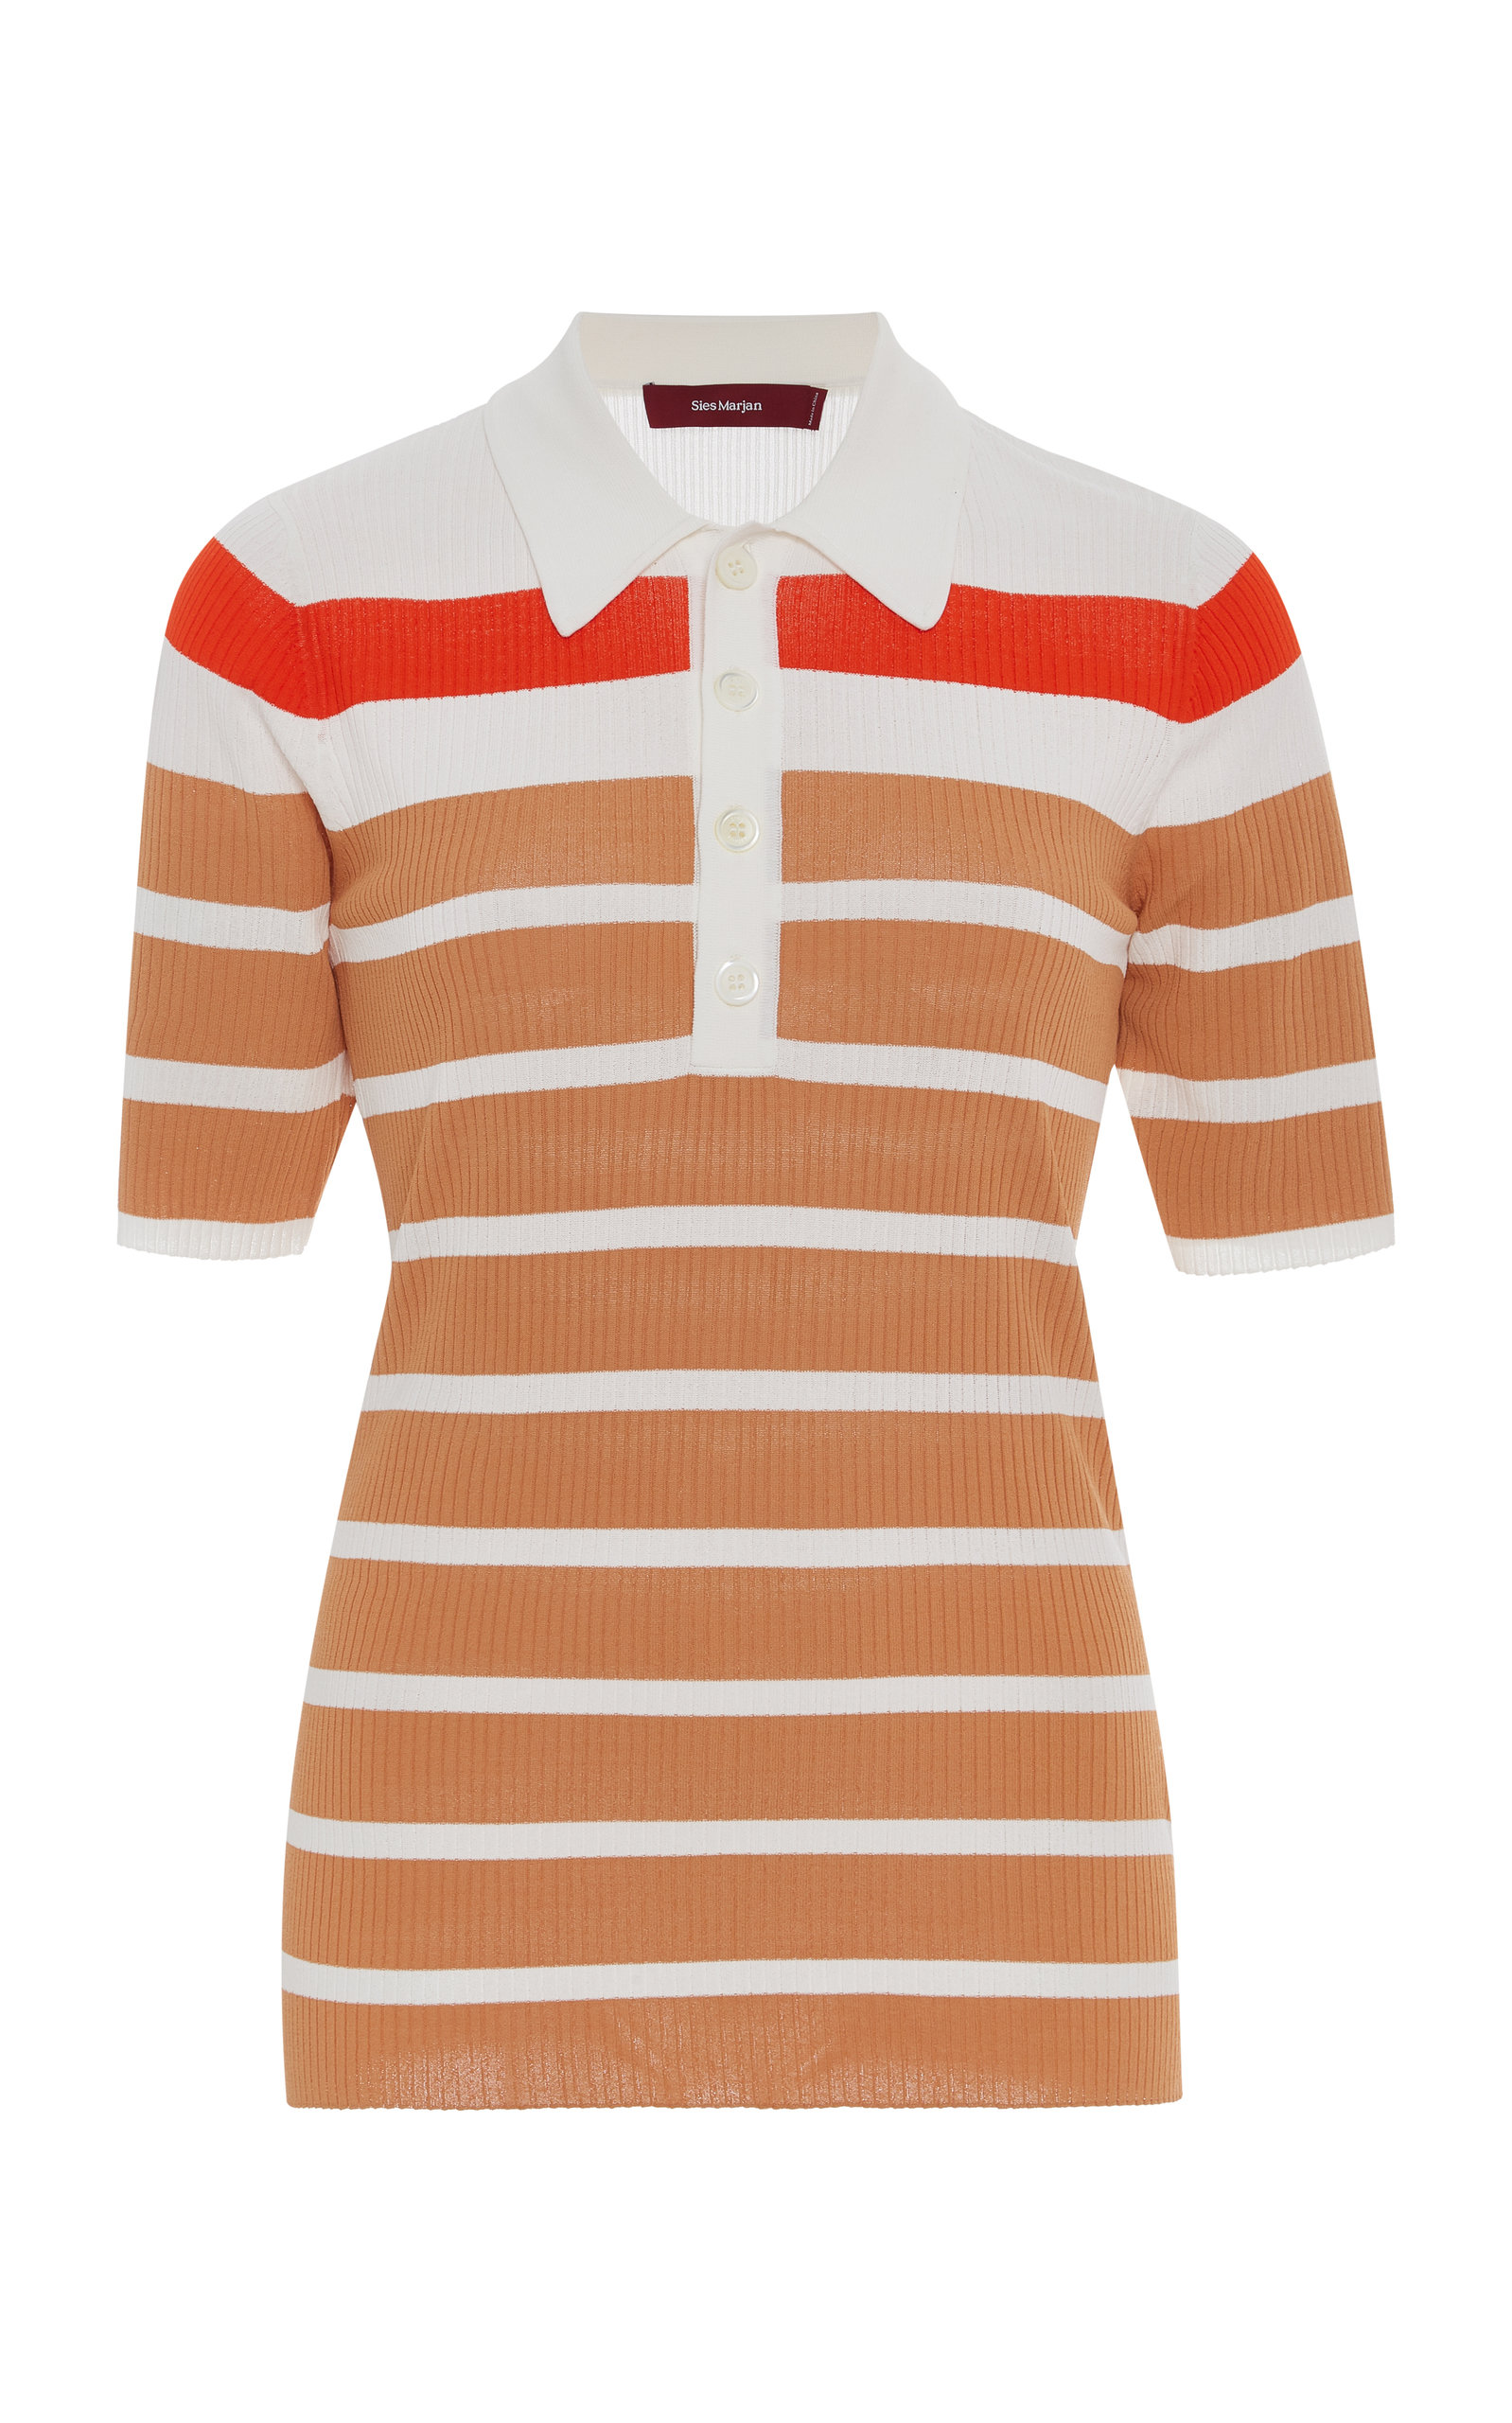 Sies Marjan Knits RORY STRIPED STRETCH-KNIT POLO SHIRT